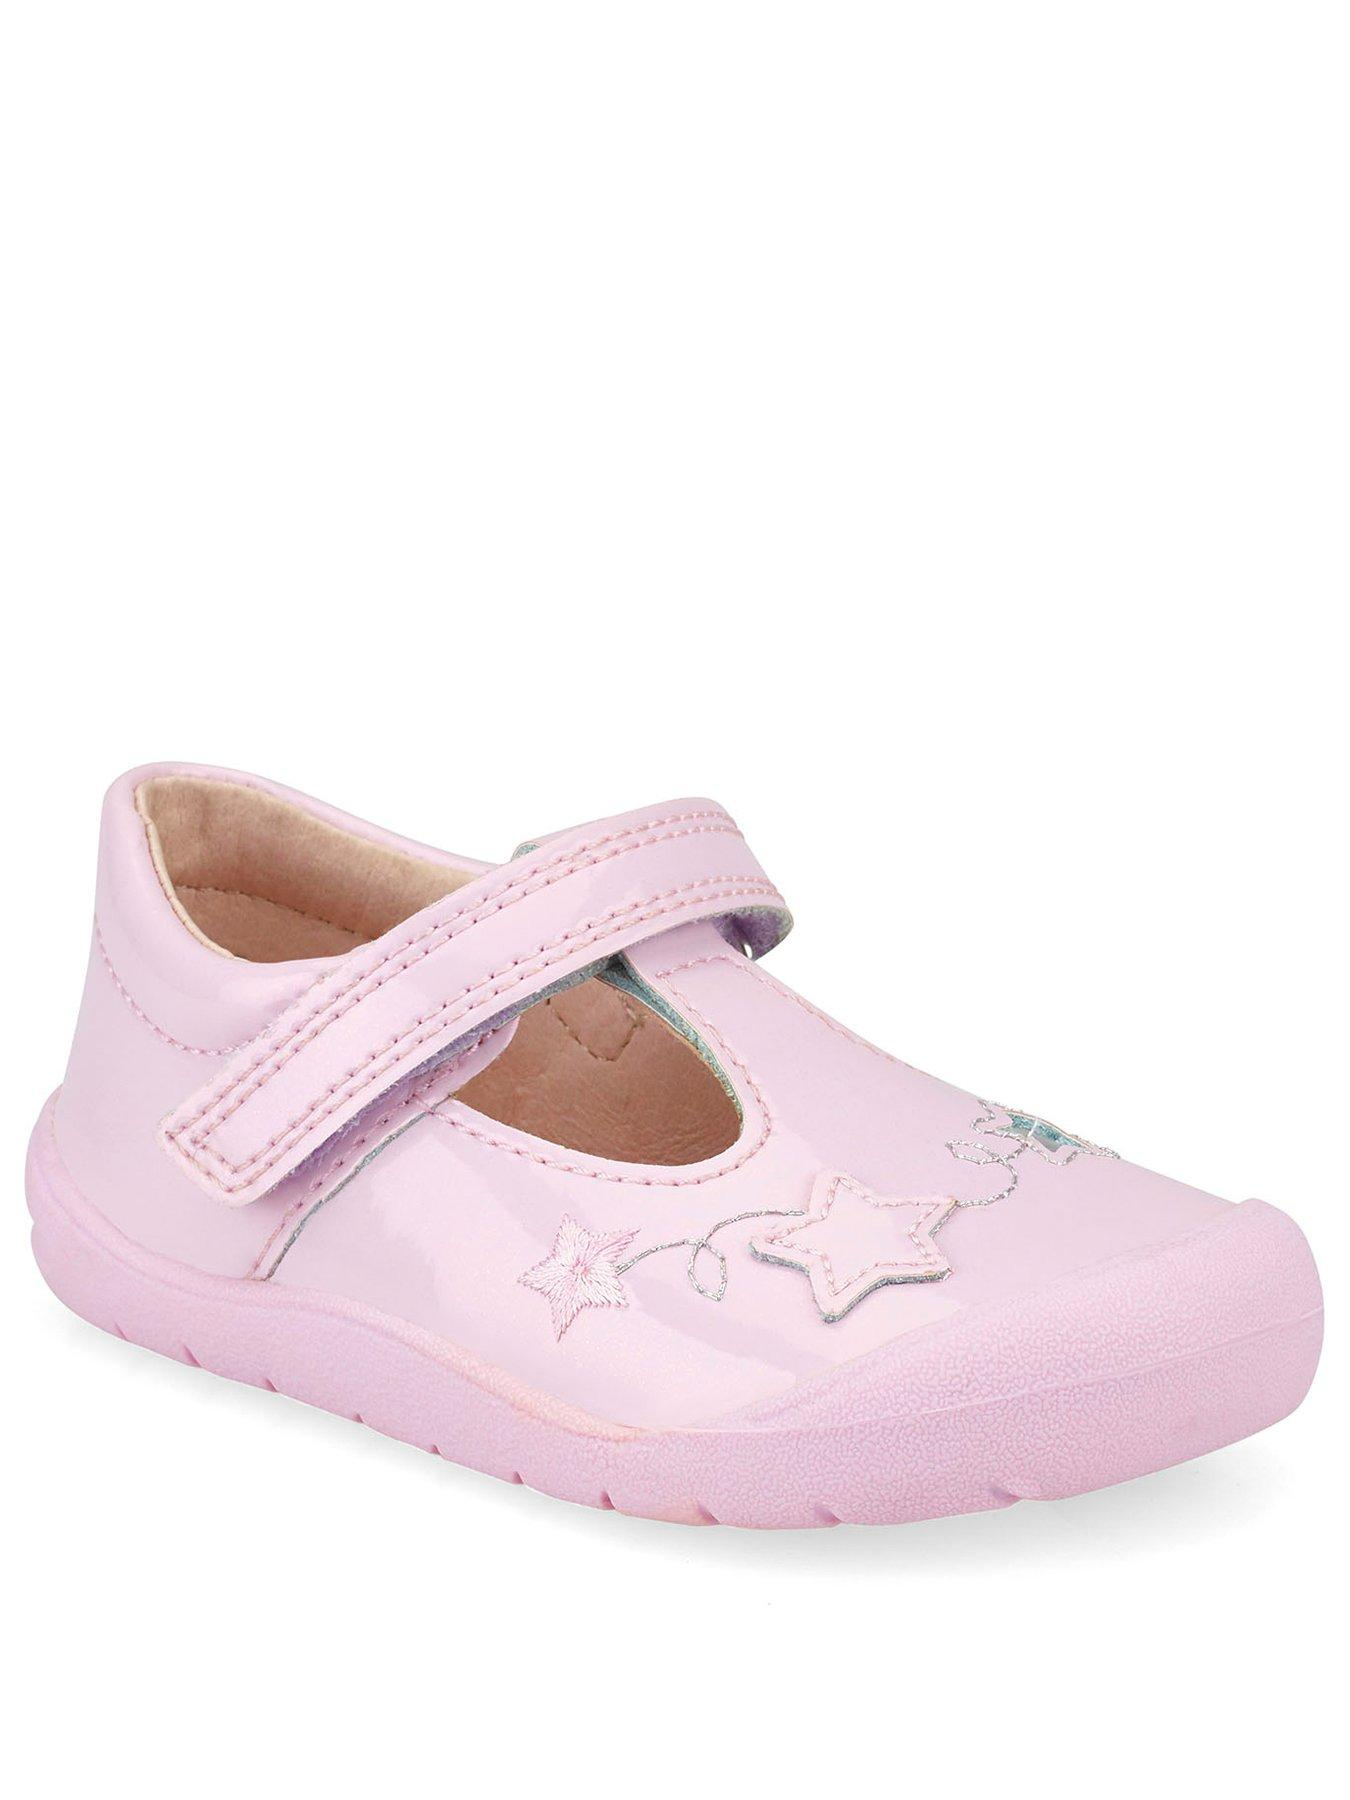 Girls T Bar  Casual Summer Shoes Flower Black,White,Pink AMY D906  sizes 7-13